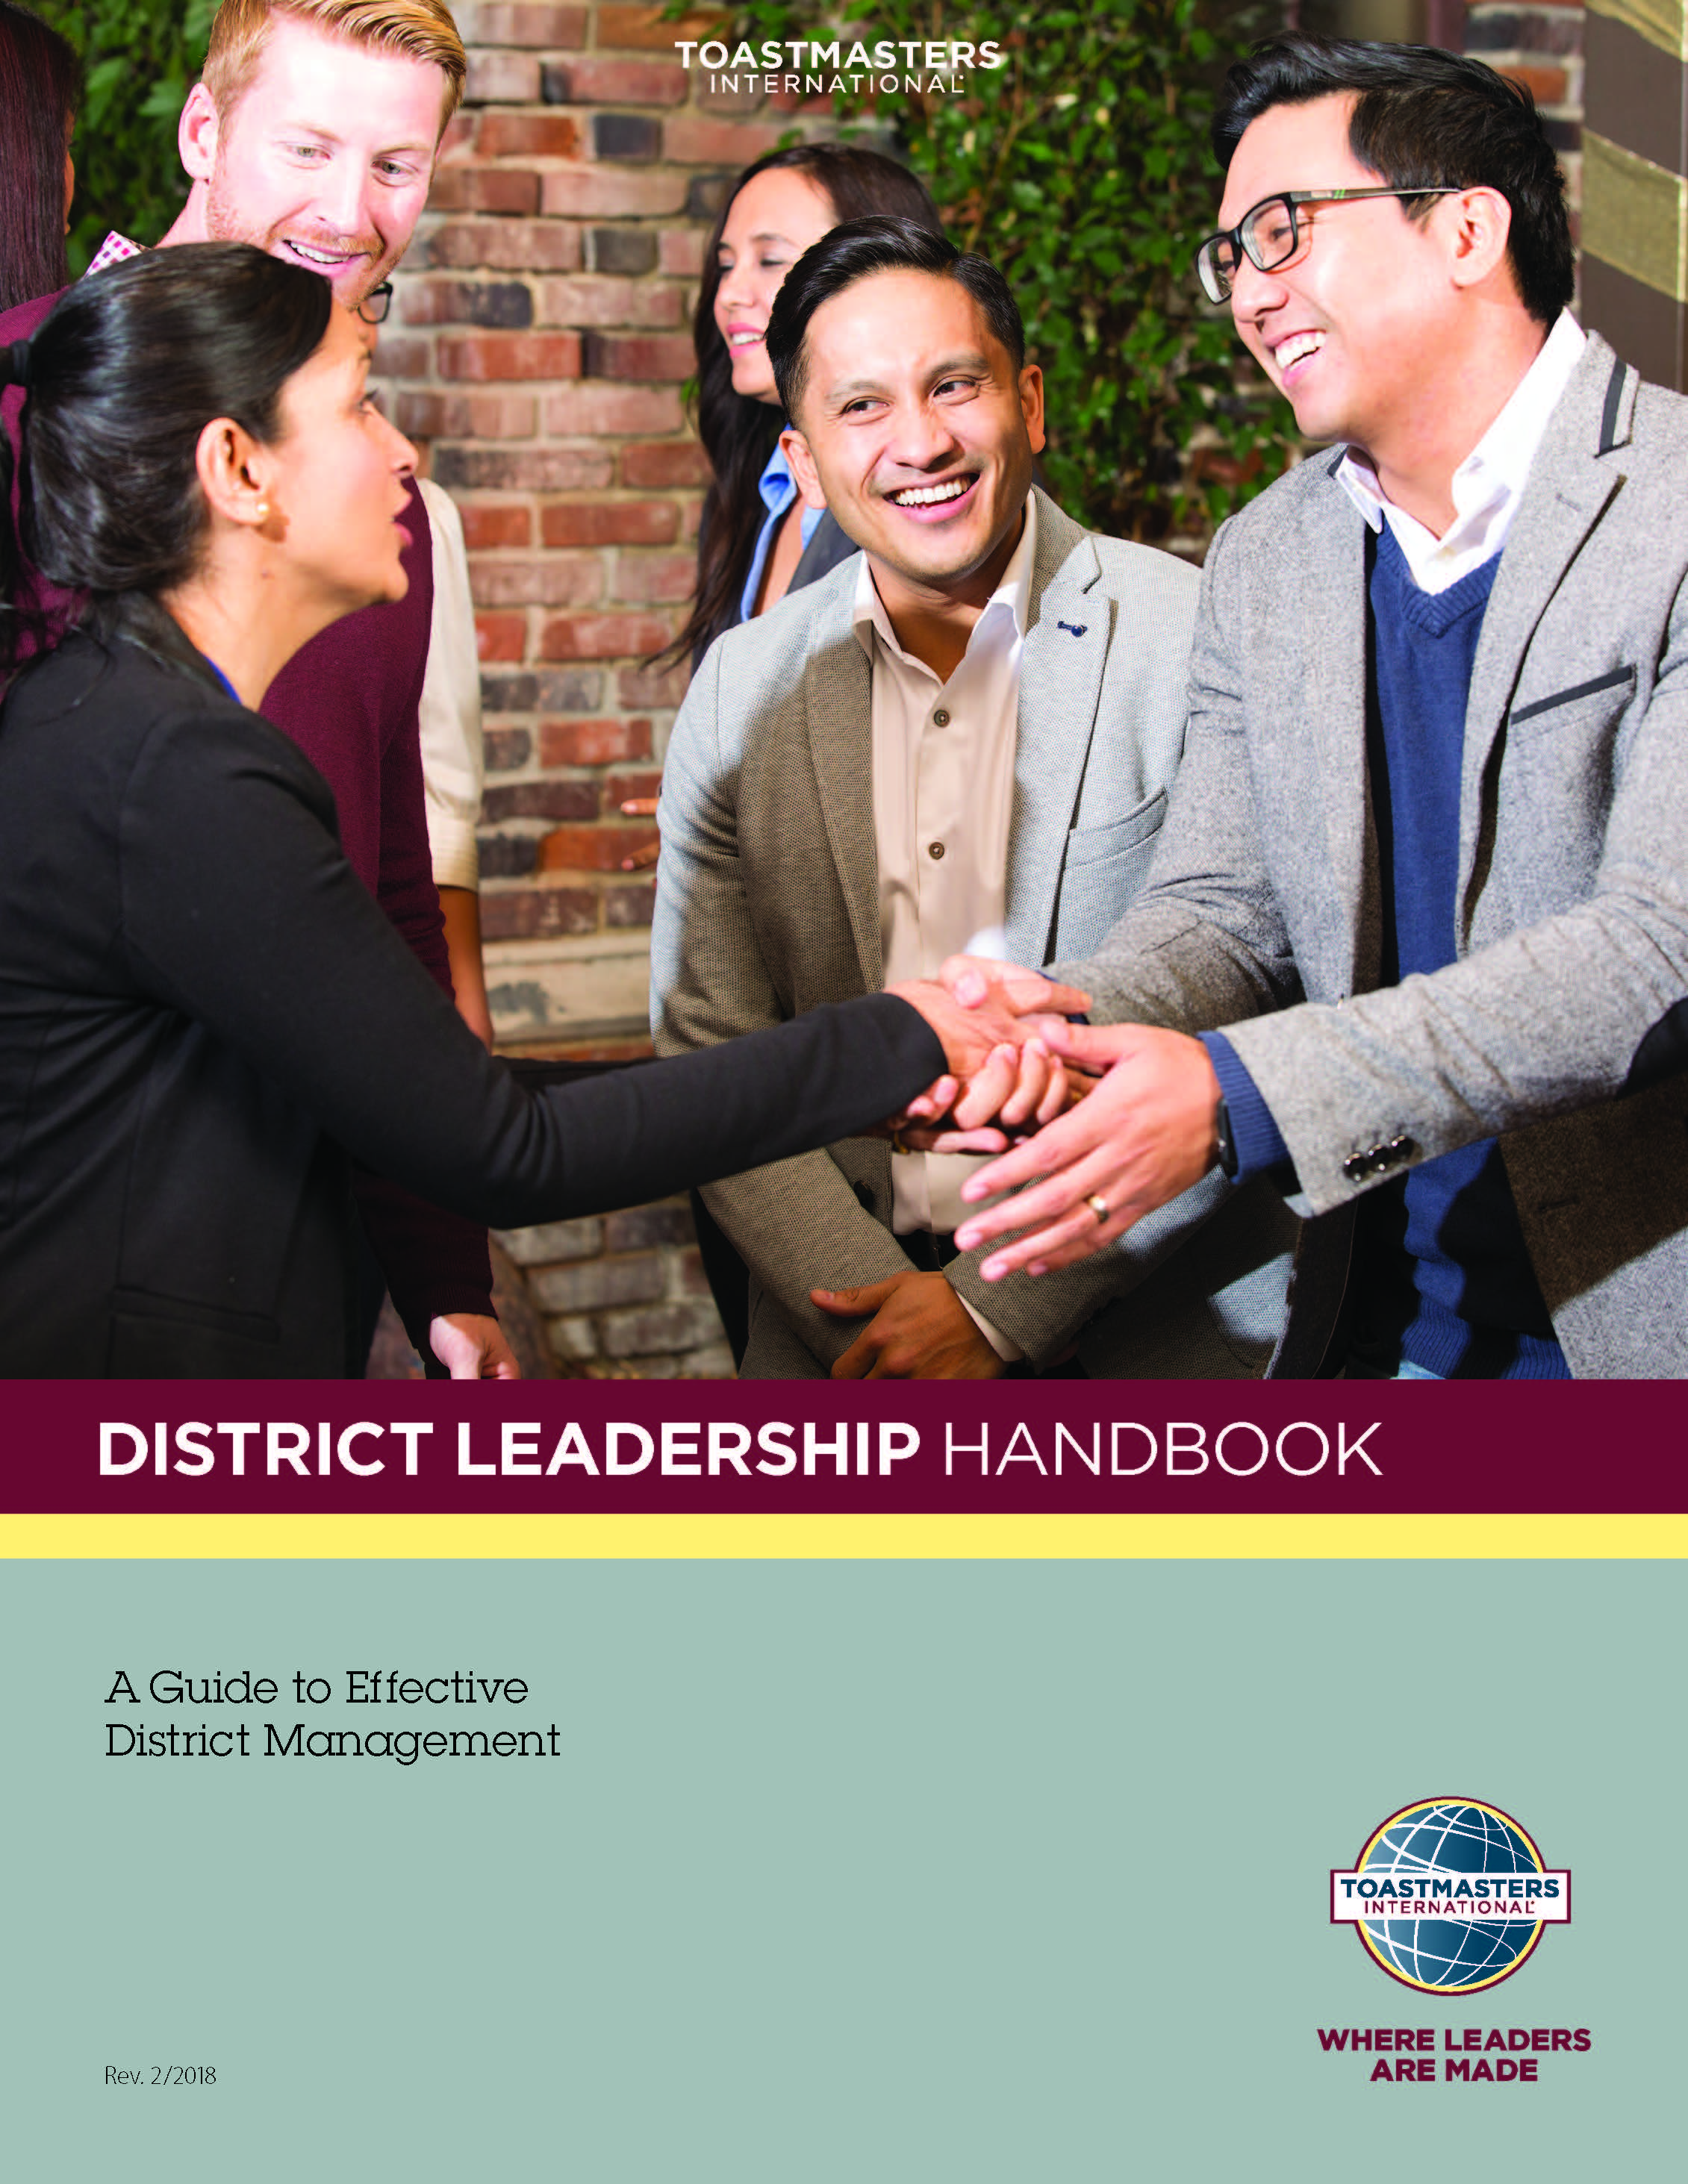 District Leadership Handbook